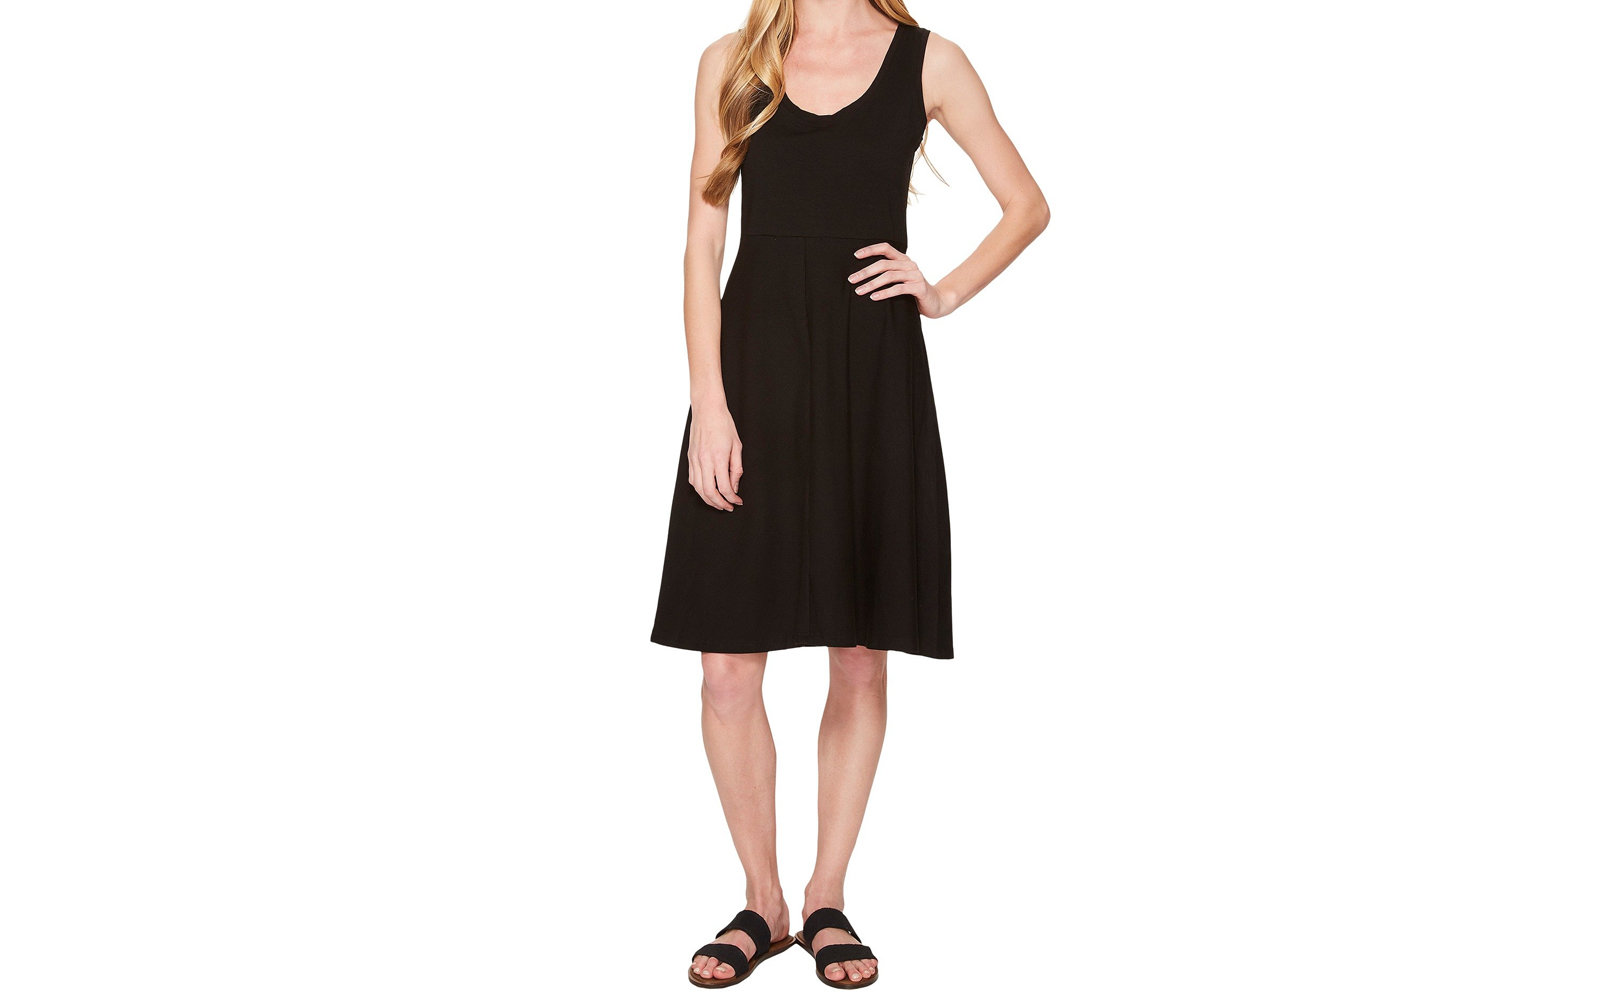 a4d8ddca66f 9 Wrinkle-resistant Dresses for Travel